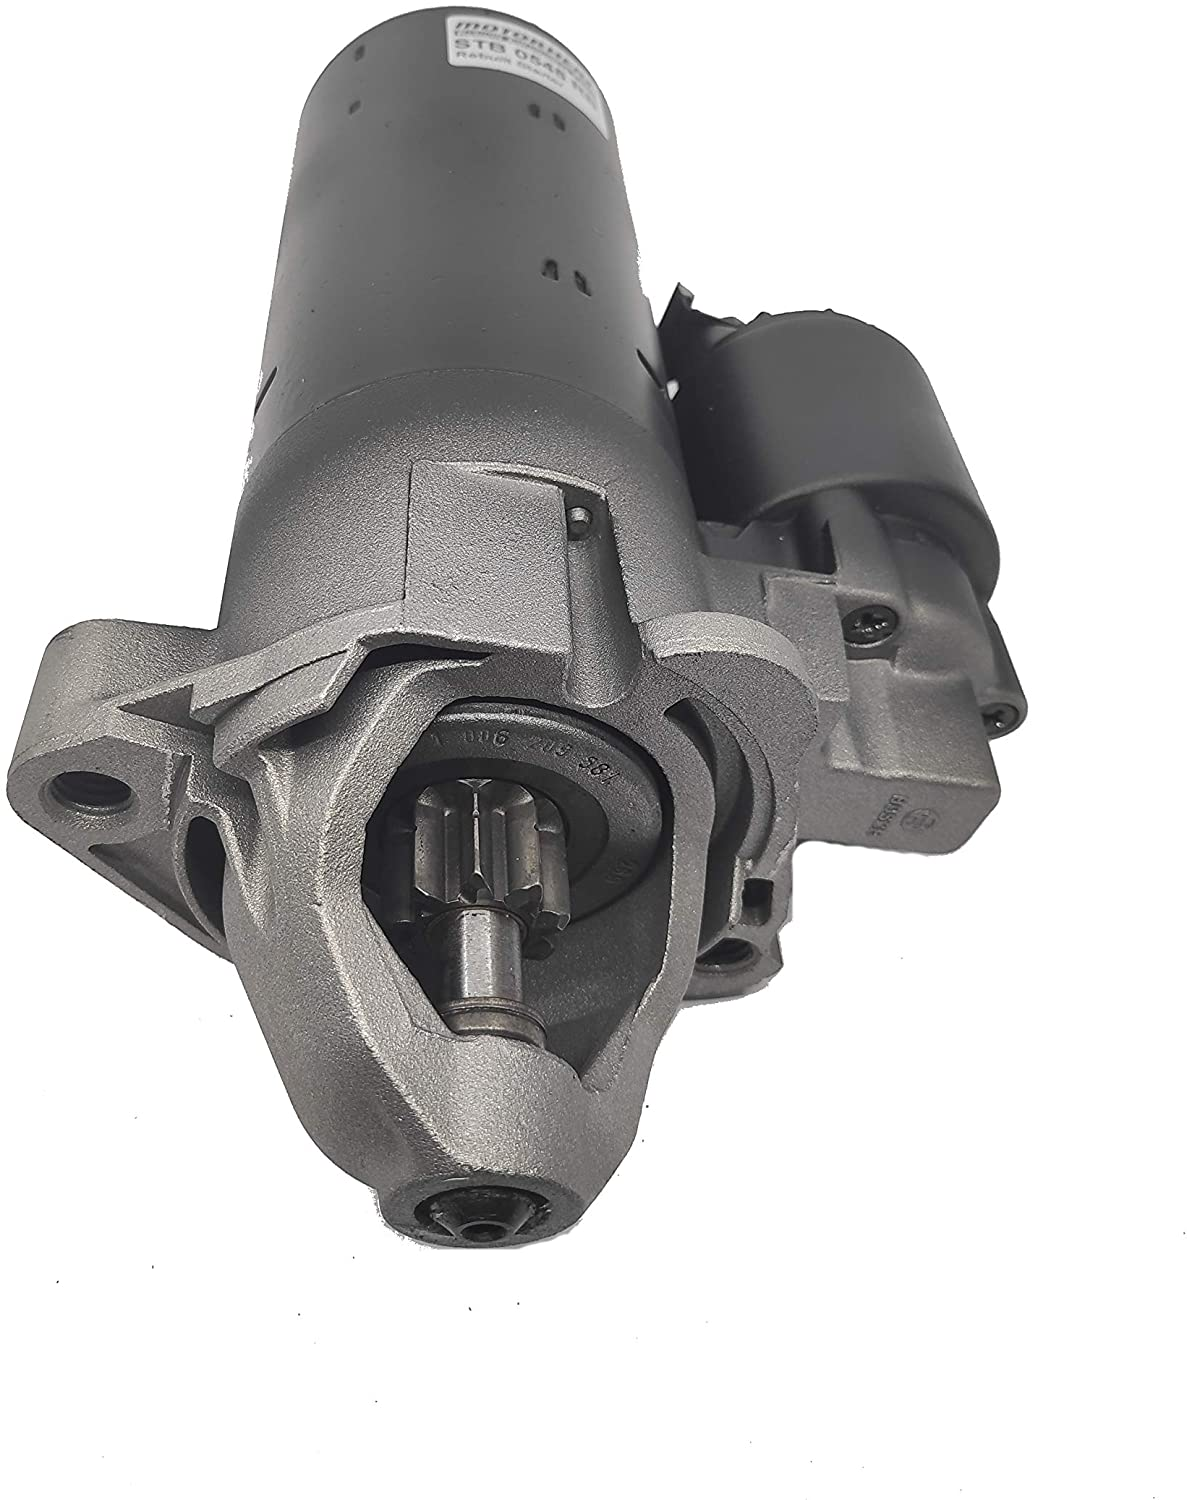 Starter STB0548RB Remanufactured by ATG Certified, 1 Year Warranty